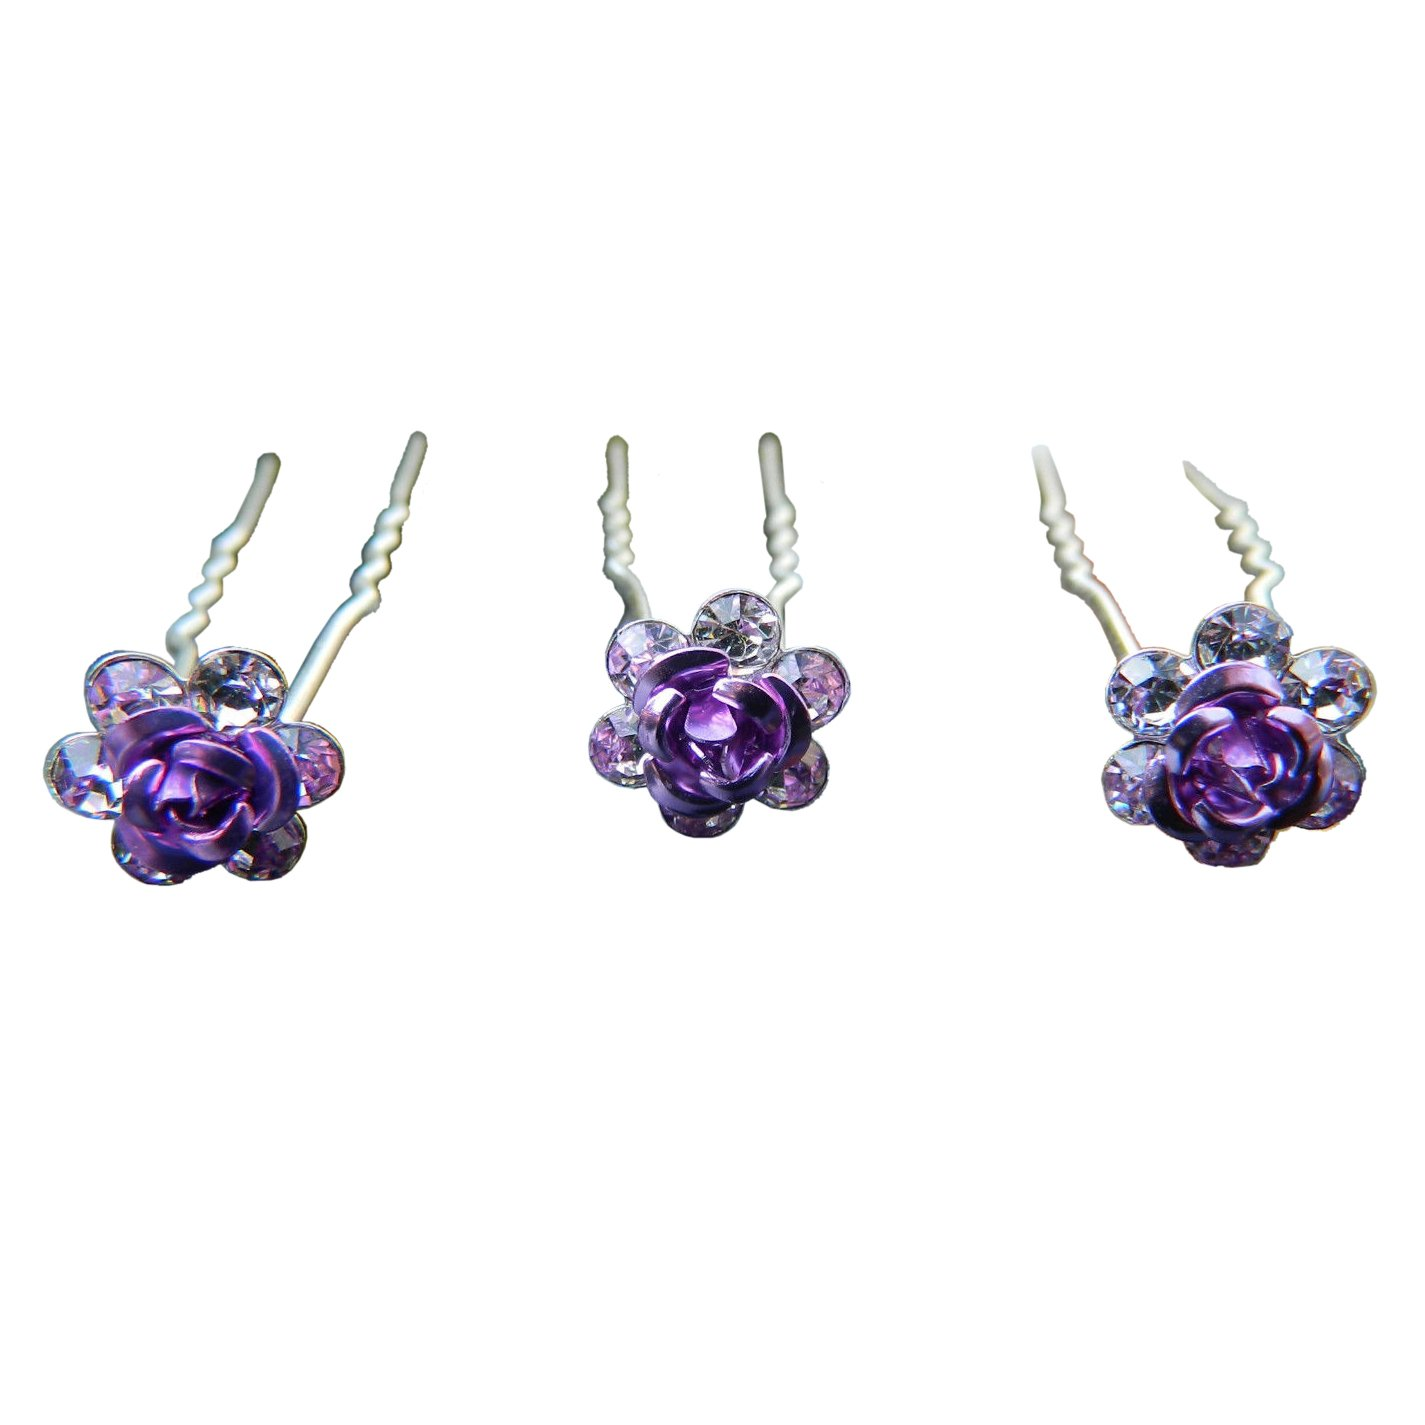 SODIAL 20pcs Rose Flower Crystal Wedding Party Bridal Prom Star Hair Pin Clips Purple 133426A7